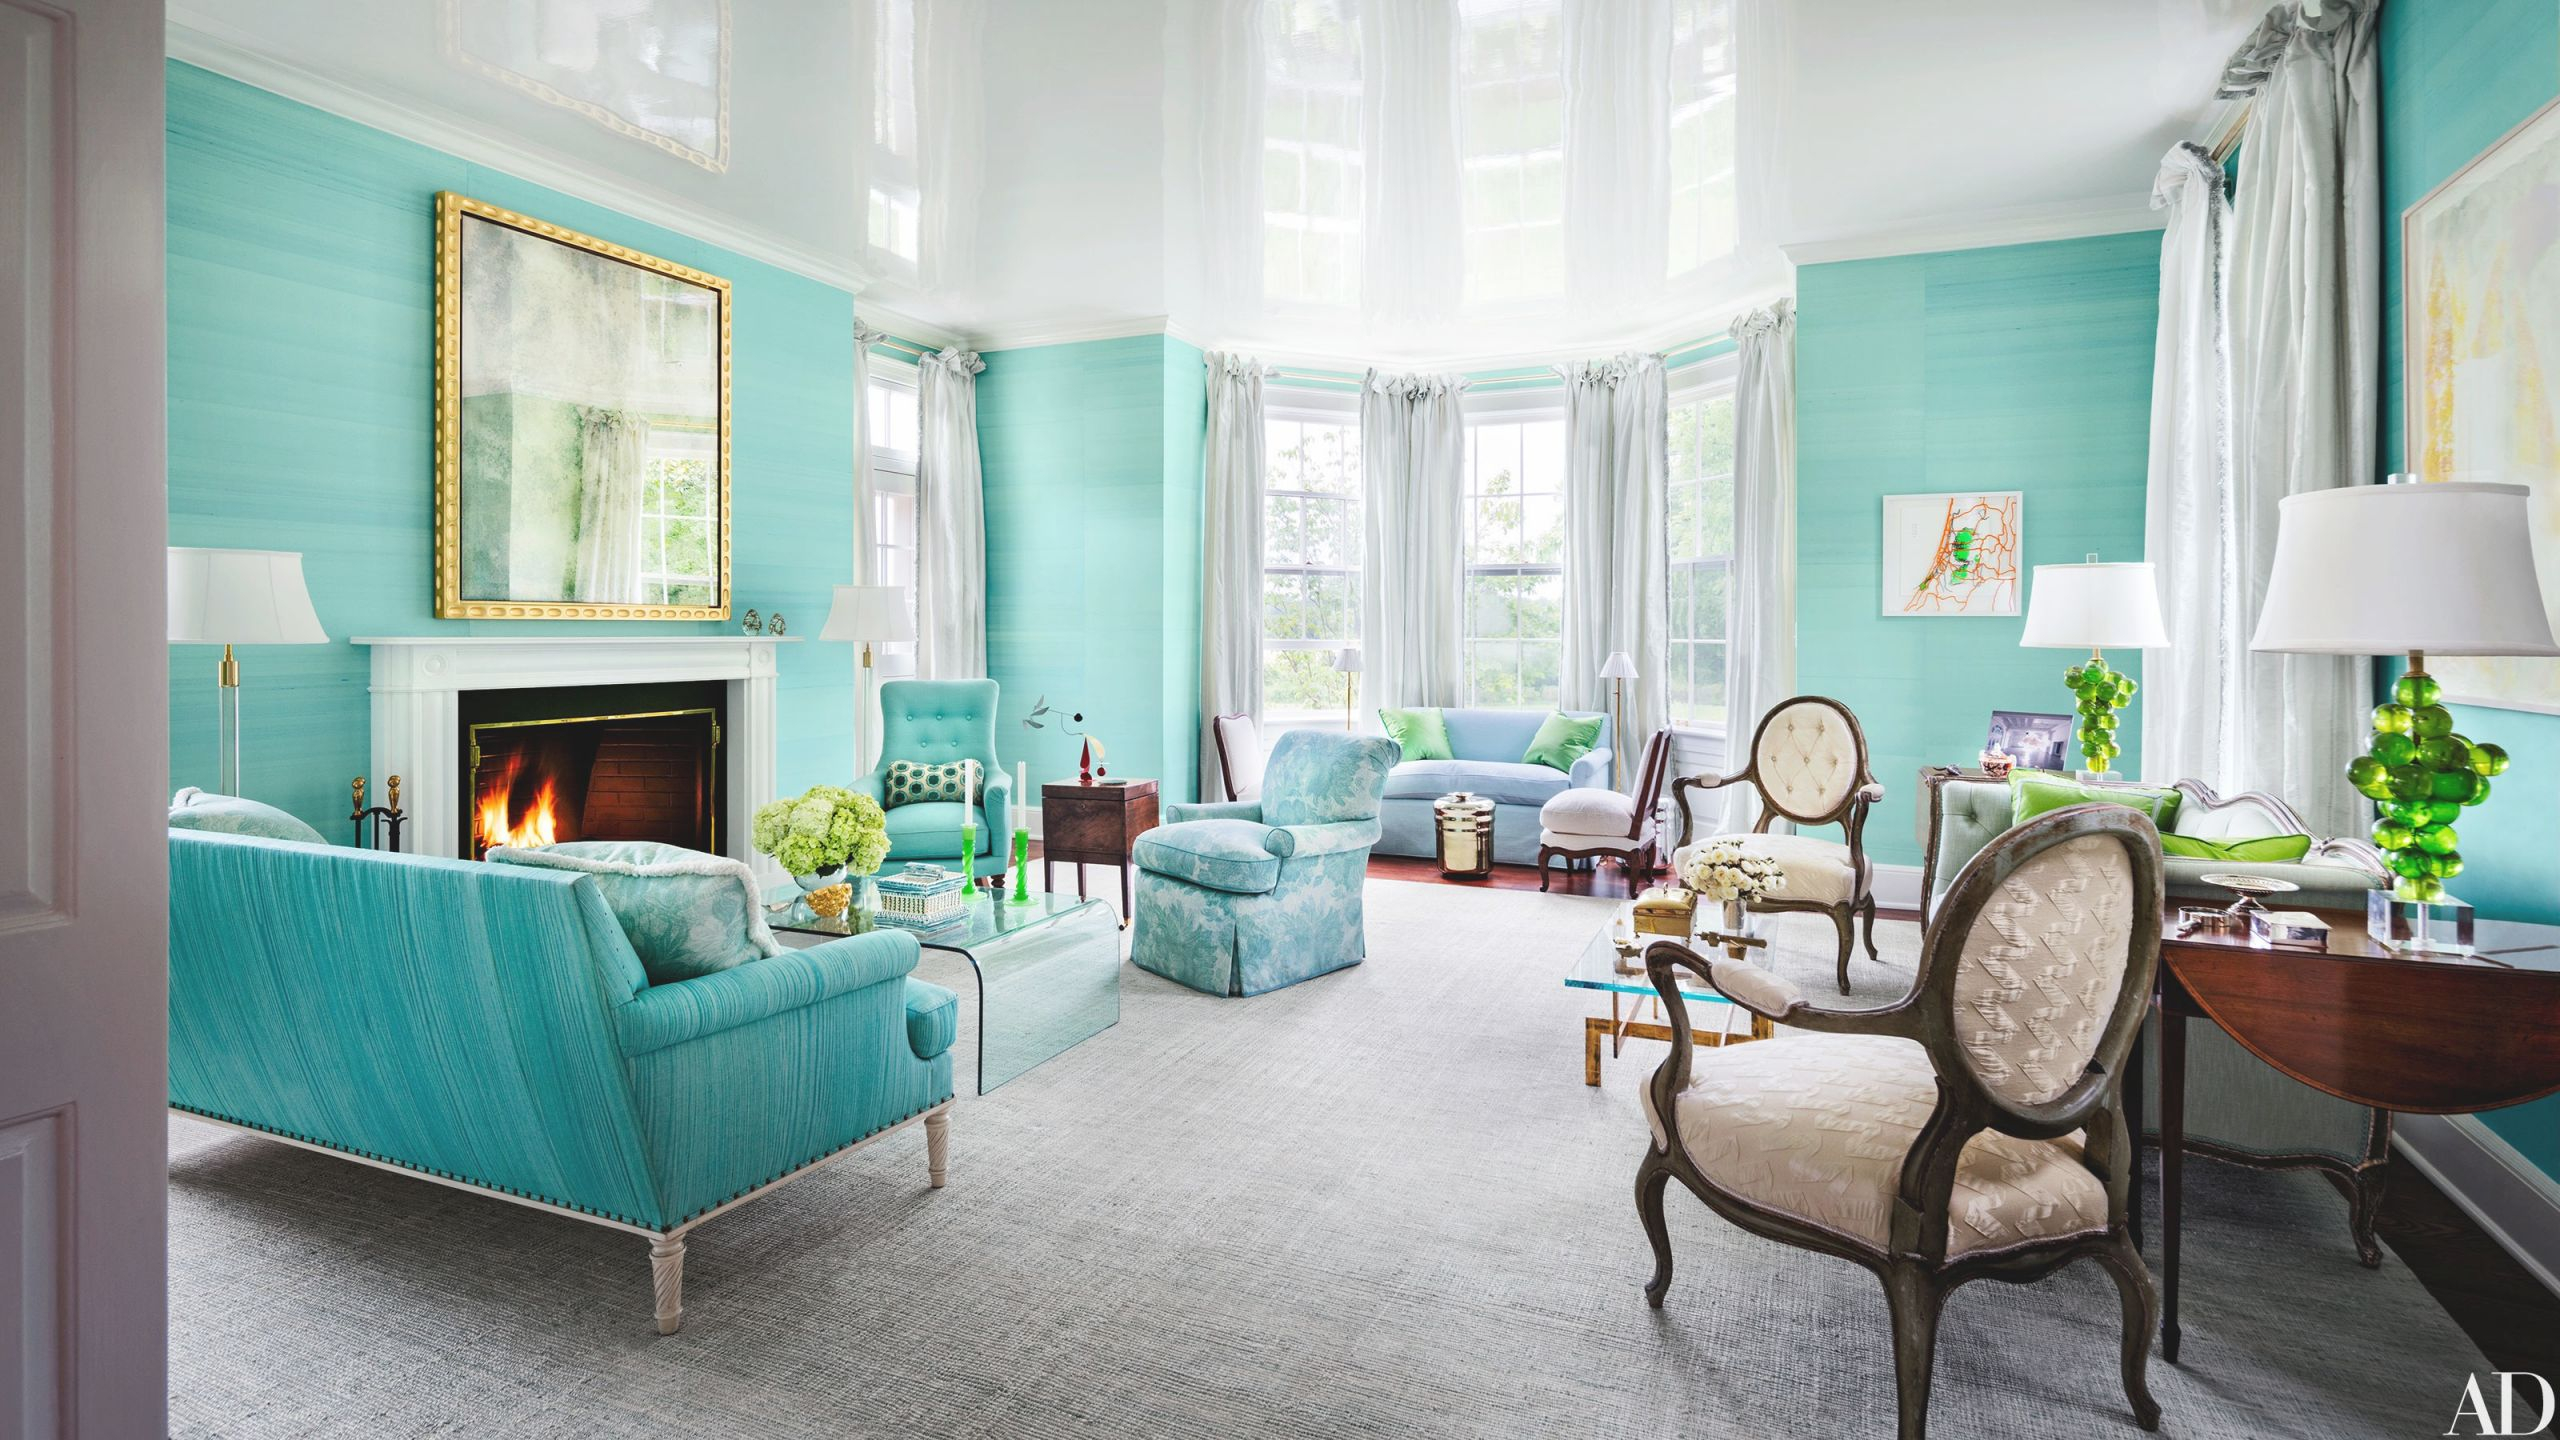 33 Spaces For Jewel-Tone Paint Color Inspiration intended for Teal Living Room Furniture